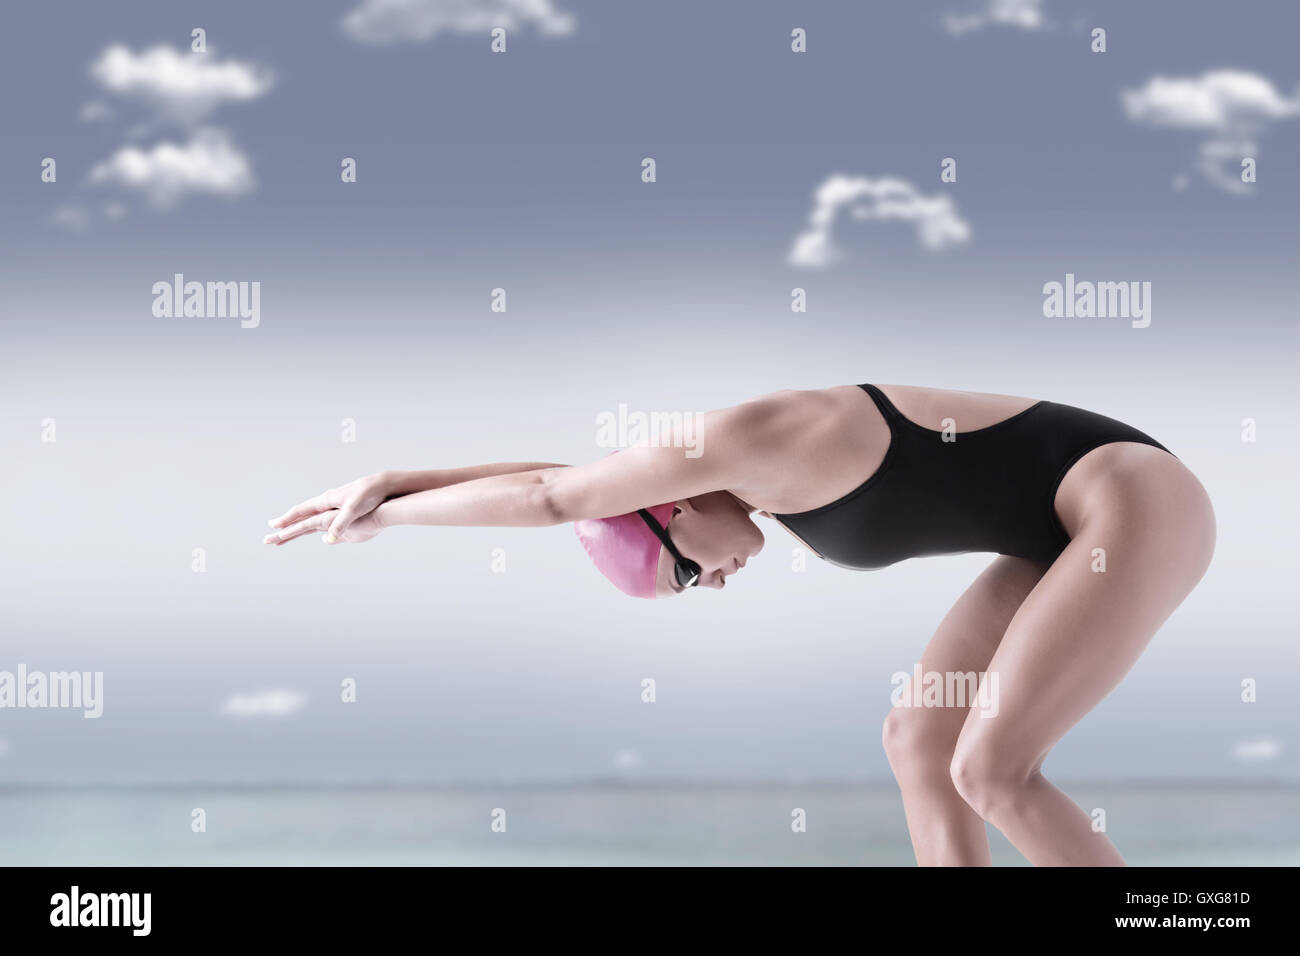 Female swimmer ready to jump to the water. Conceptual image. - Stock Image